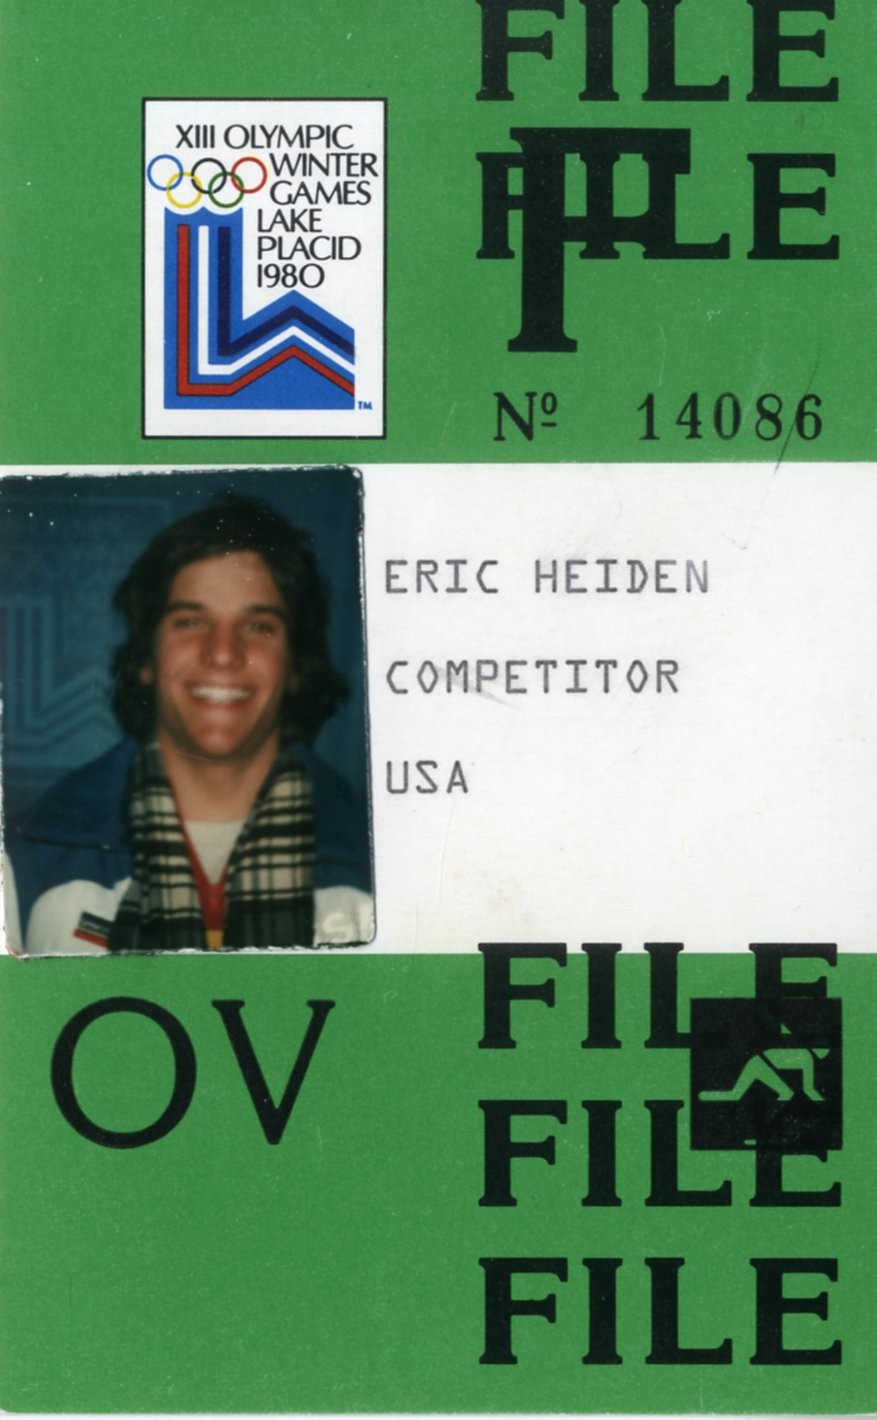 Olympic Credential for the 1980 Games